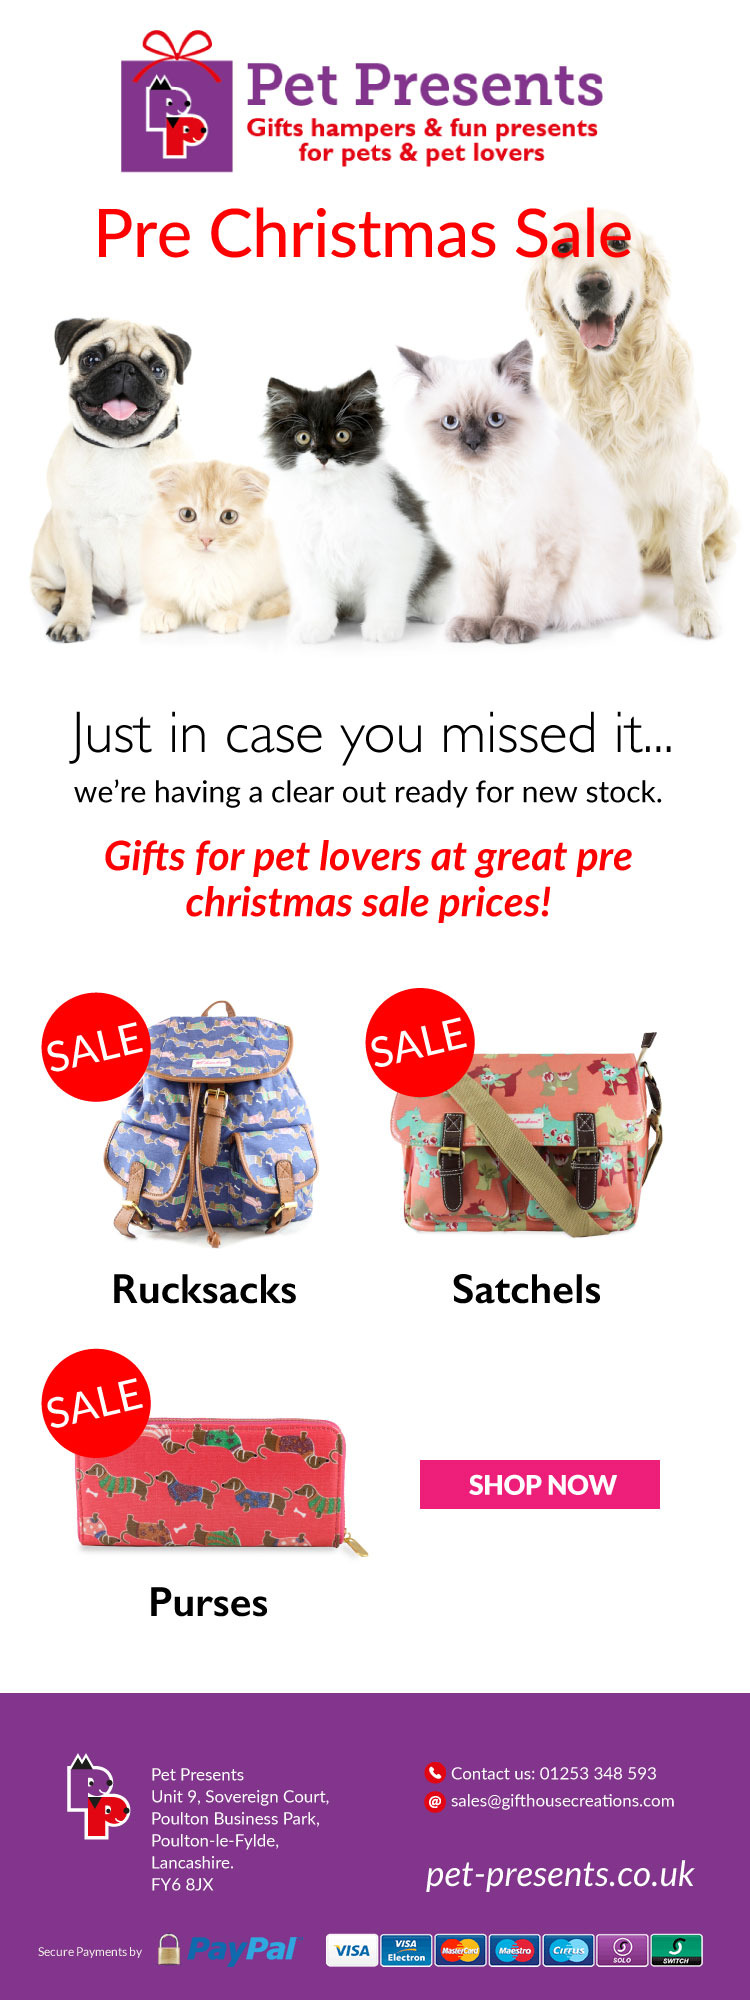 Pre Christmas Sale Items From Pet Presents.